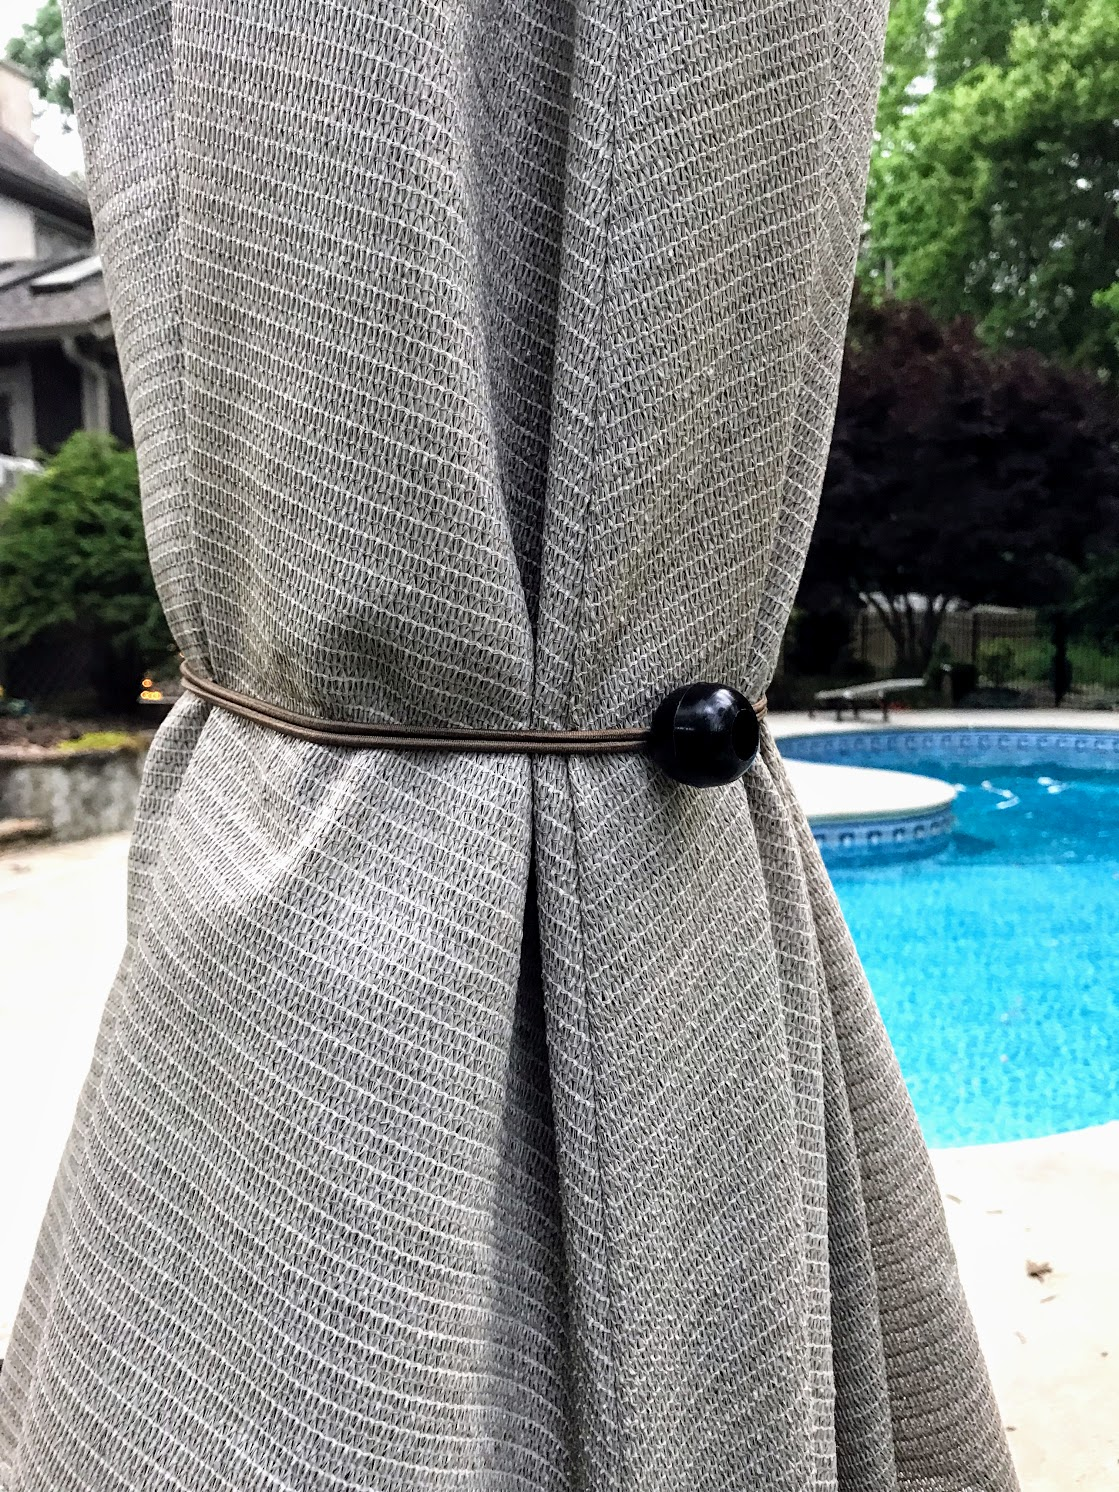 windproof your pool umbrella